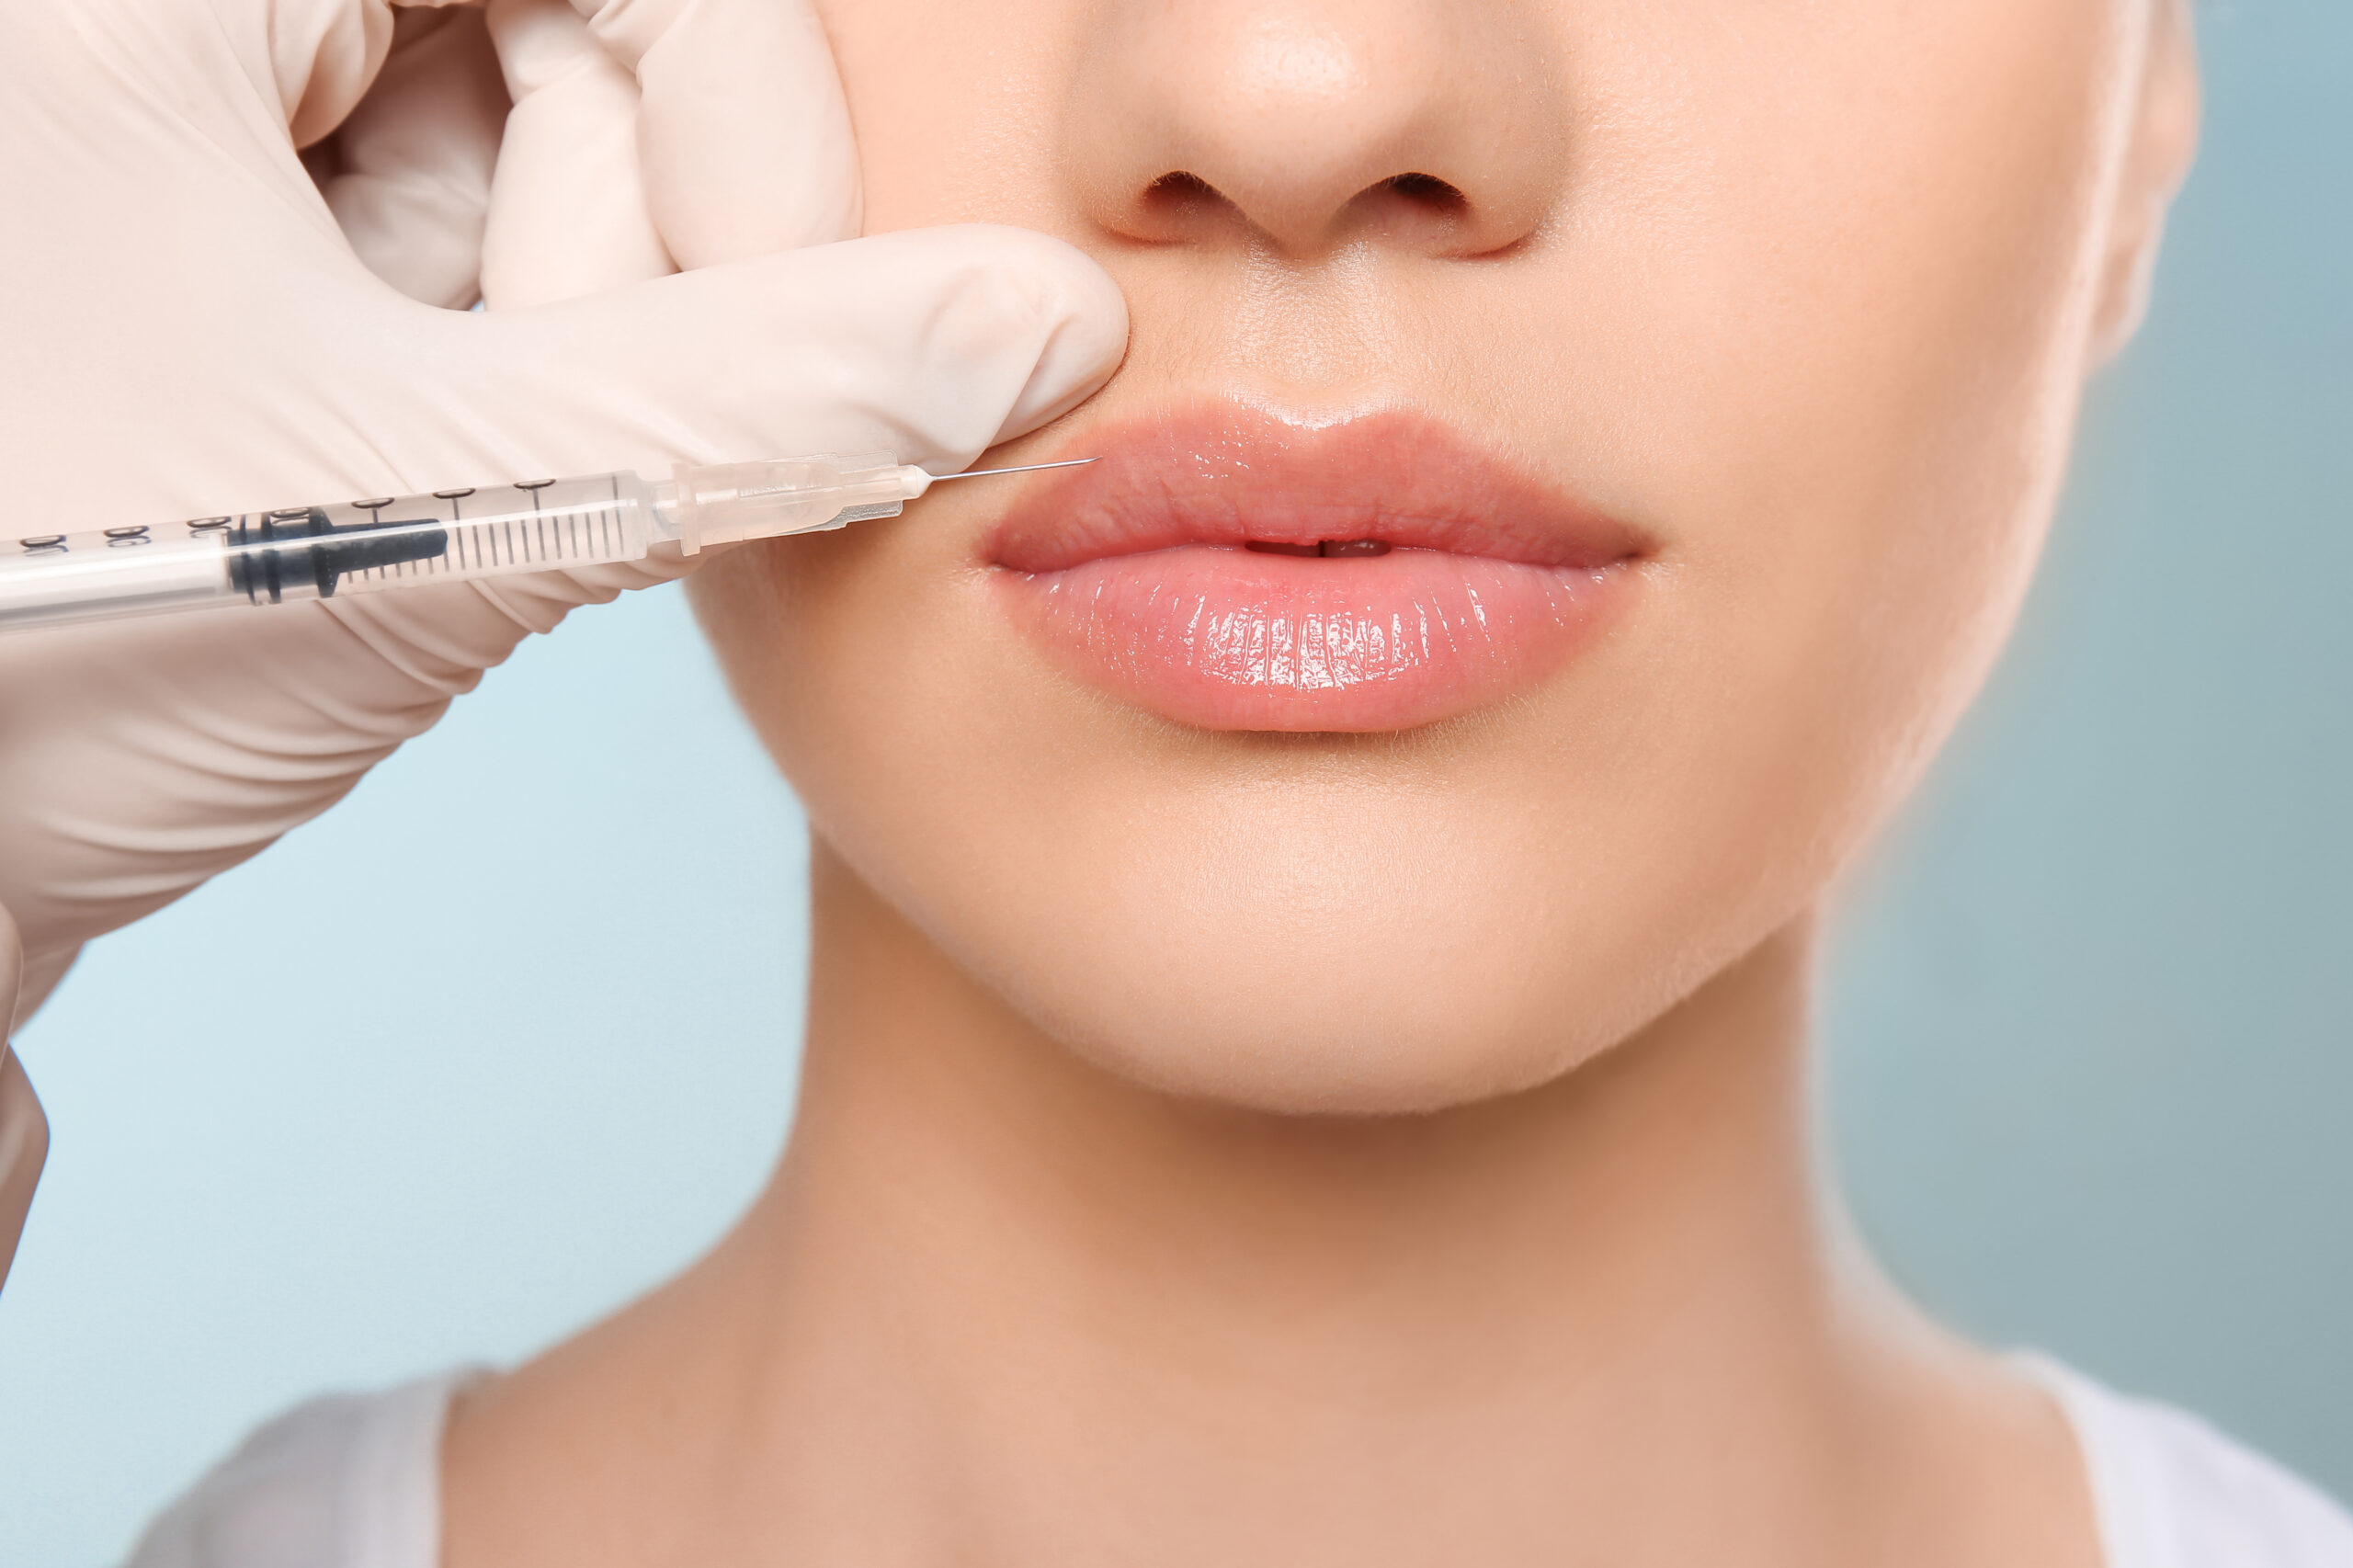 lip filler image